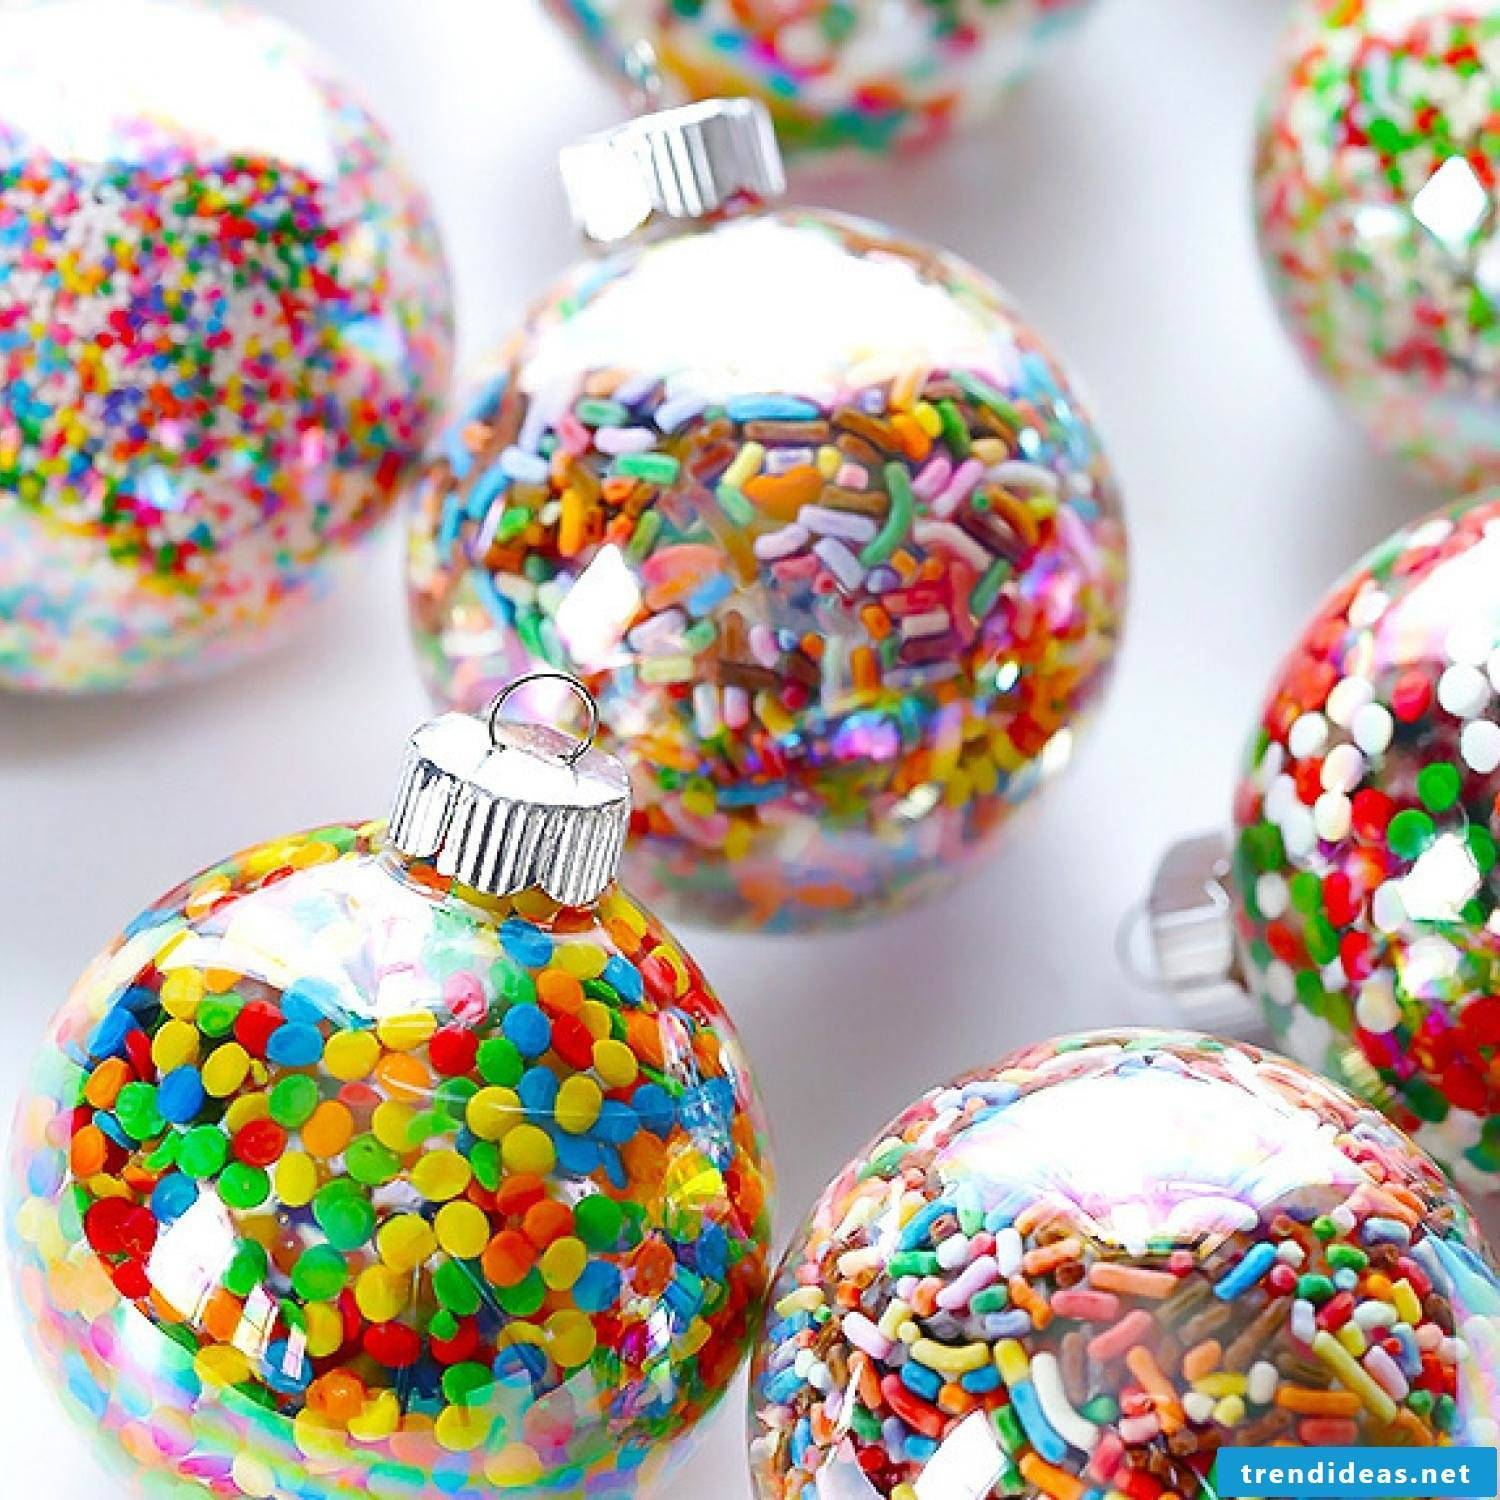 Christmas crafts with children - making Christmas tree decorations yourself